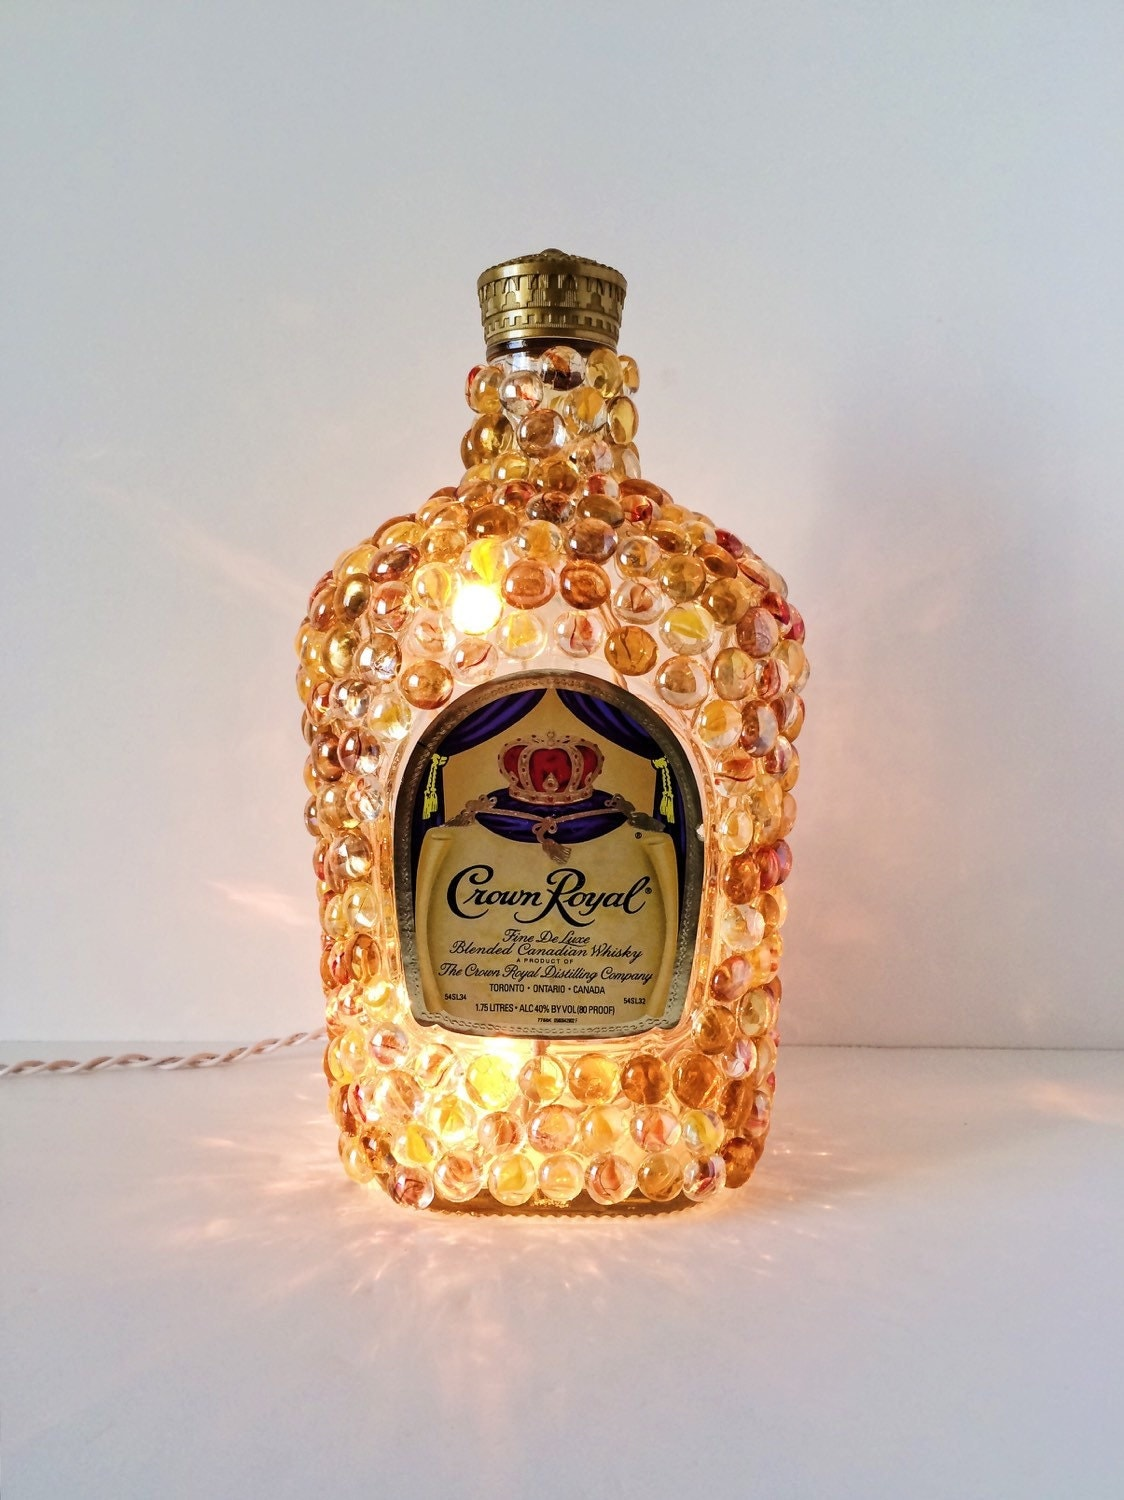 Crown Royal Whisky Bottle Light Whisky Bottle Filled With